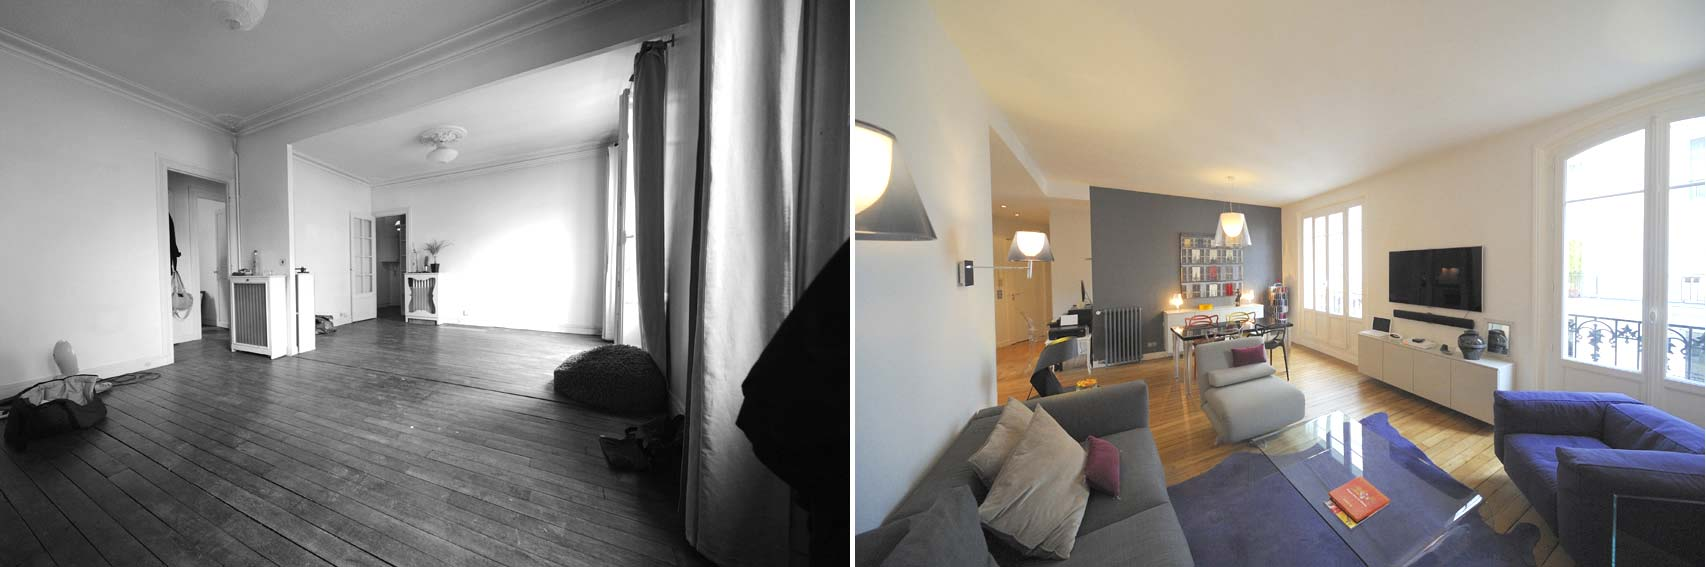 Avant apr s transformation d 39 un appartement de 65m2 du for Architecte interieur nimes